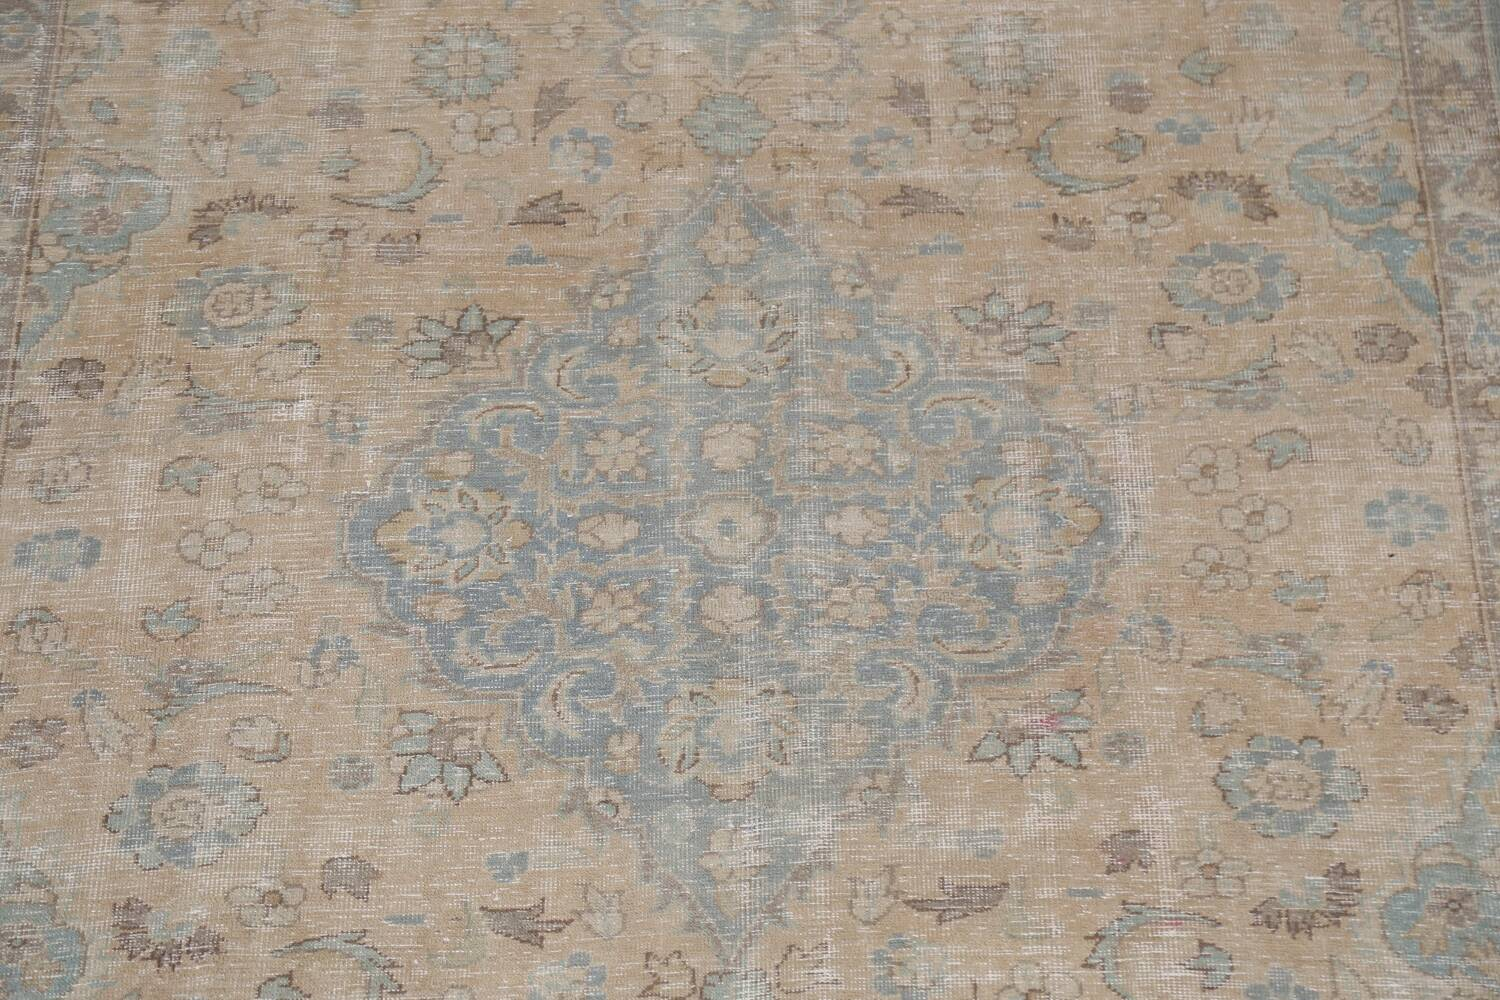 Muted Distressed Mashad Persian Area Rug 7x10 image 5